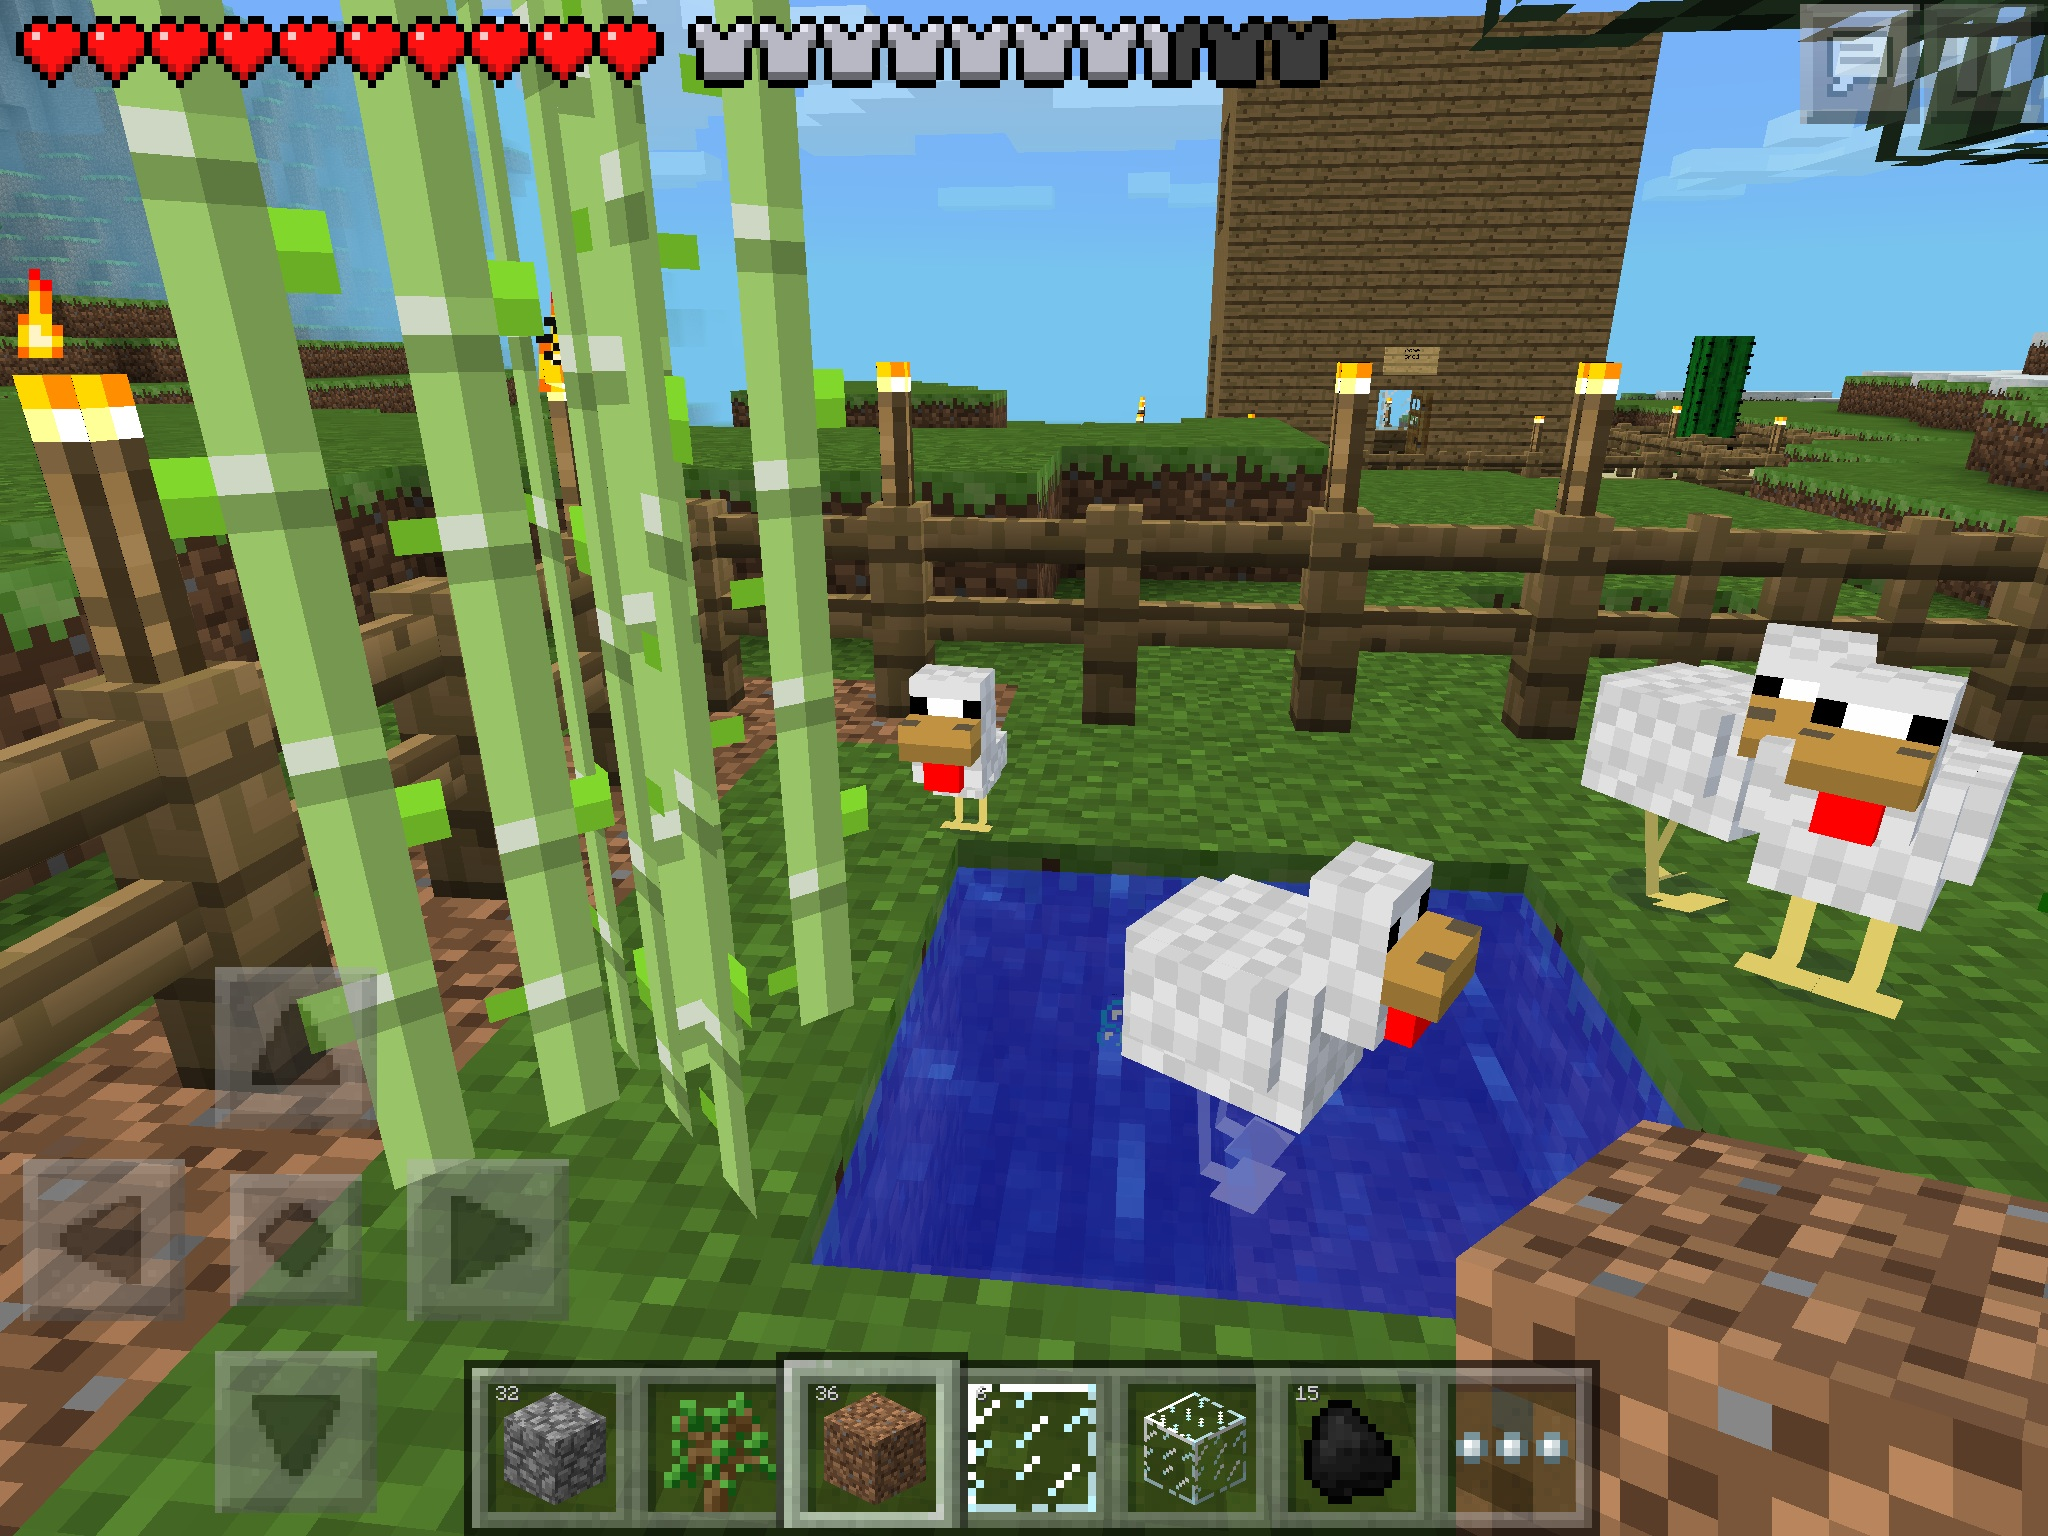 Minecraft pocket edition images the chicken pool at the chicken minecraft pocket edition images the chicken pool at the chicken farm hd wallpaper and background photos voltagebd Images